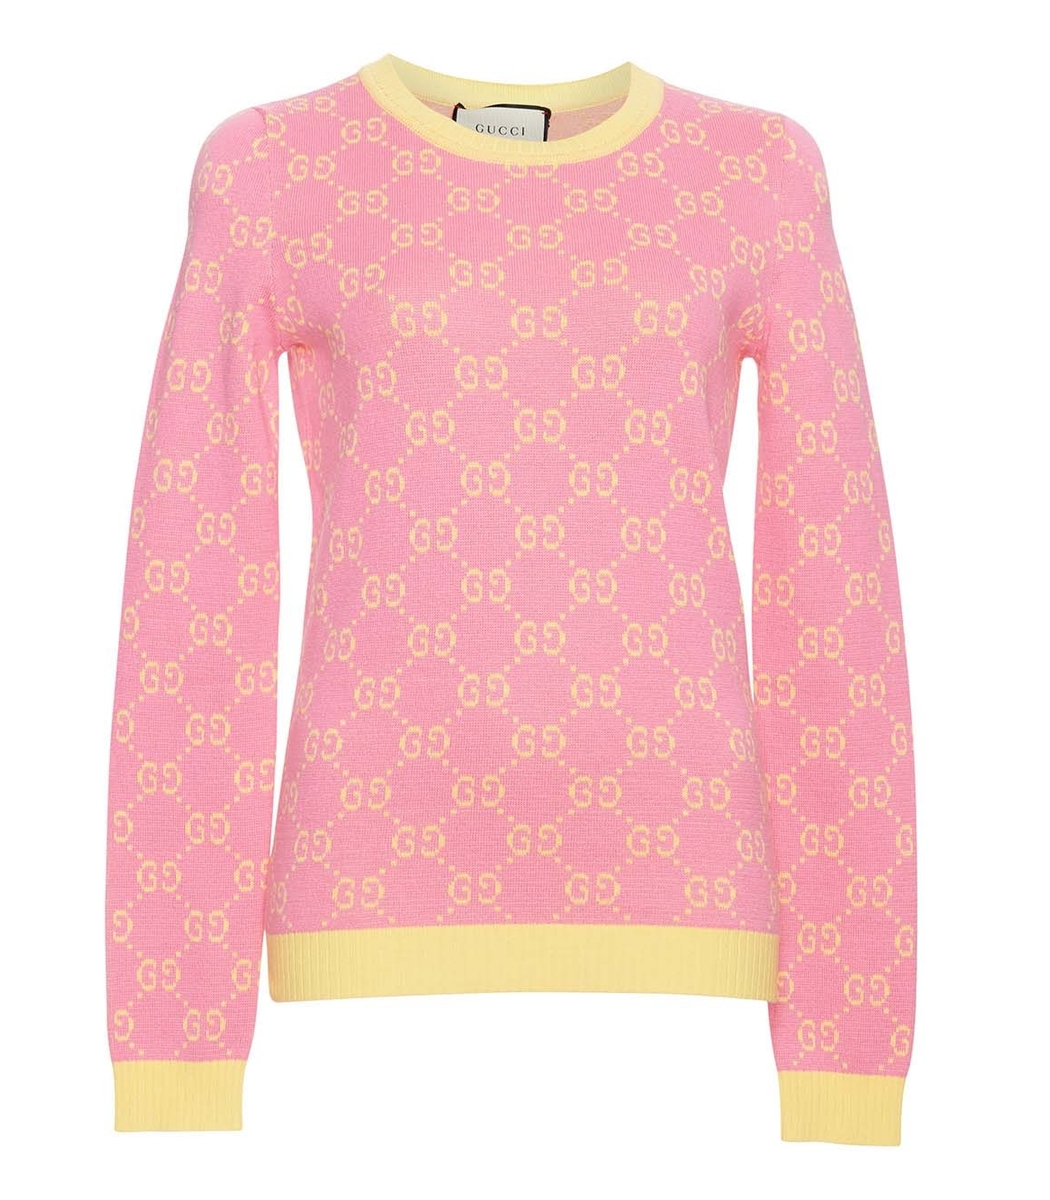 GUCCI YELLOW PINK LONG SLEEVE CREWNECK SWEATER, PINK ...